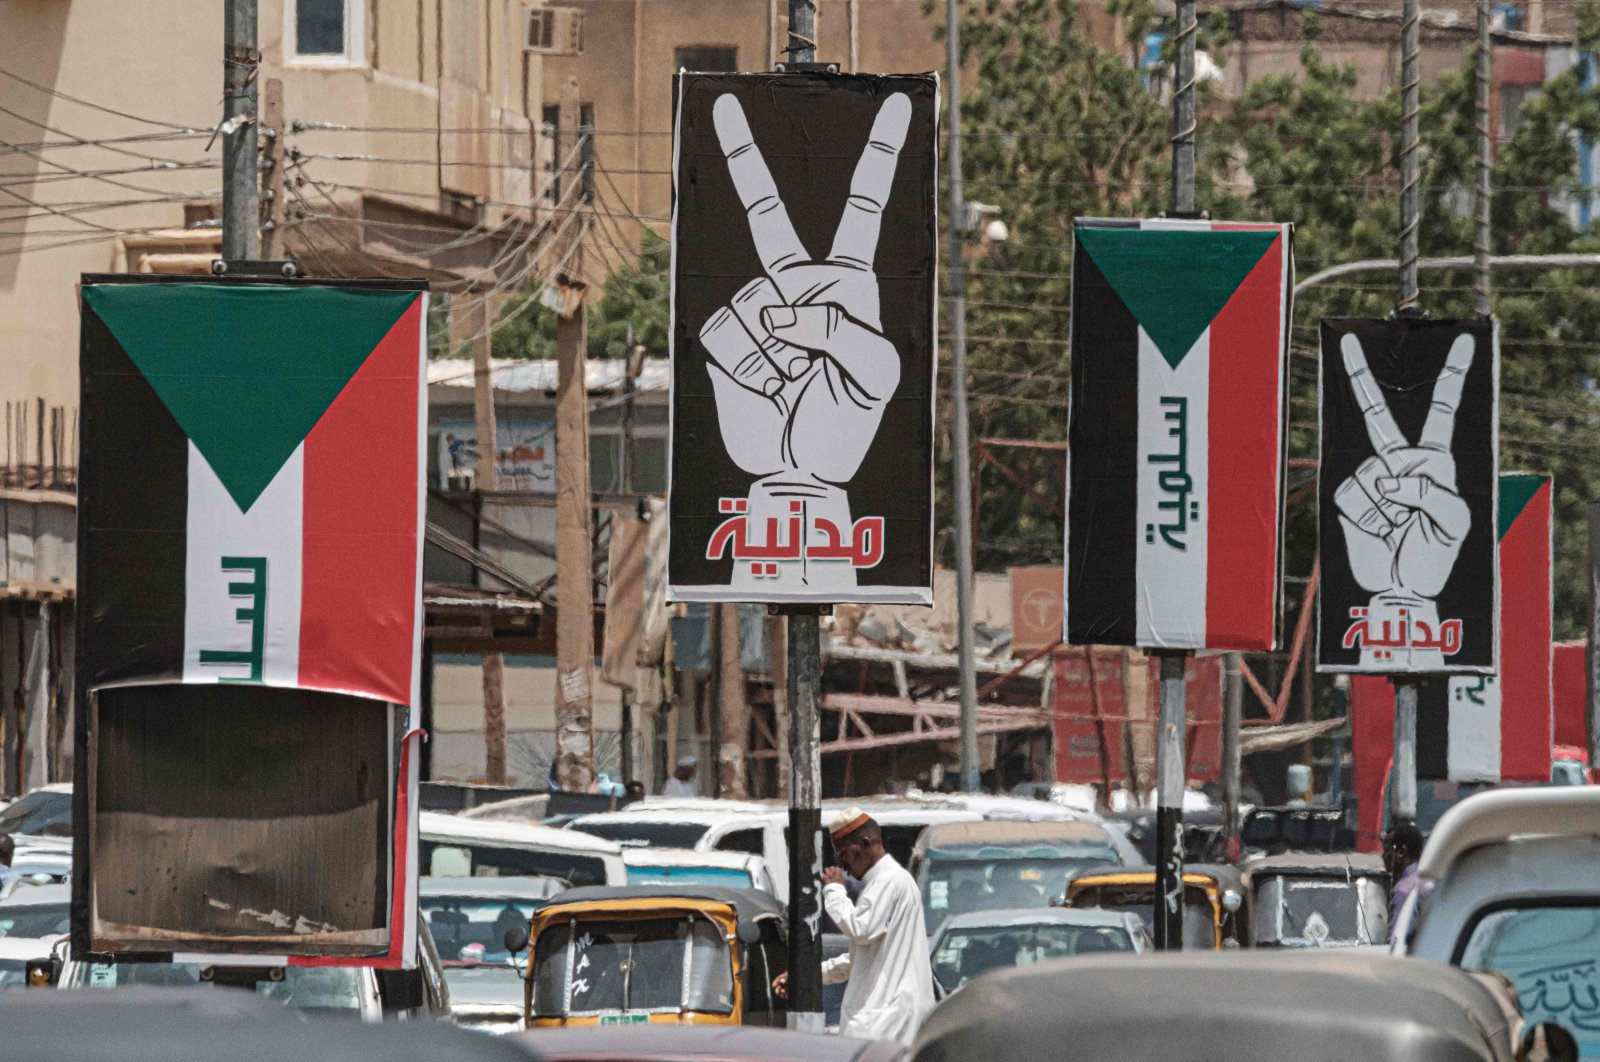 Placards showing the victory gesture with the Arabic word for civilian and others of the Sudanese flag with the word peaceful seen along a street in Khartoum, Sudan, June 15, 2019. (AFP Photo)